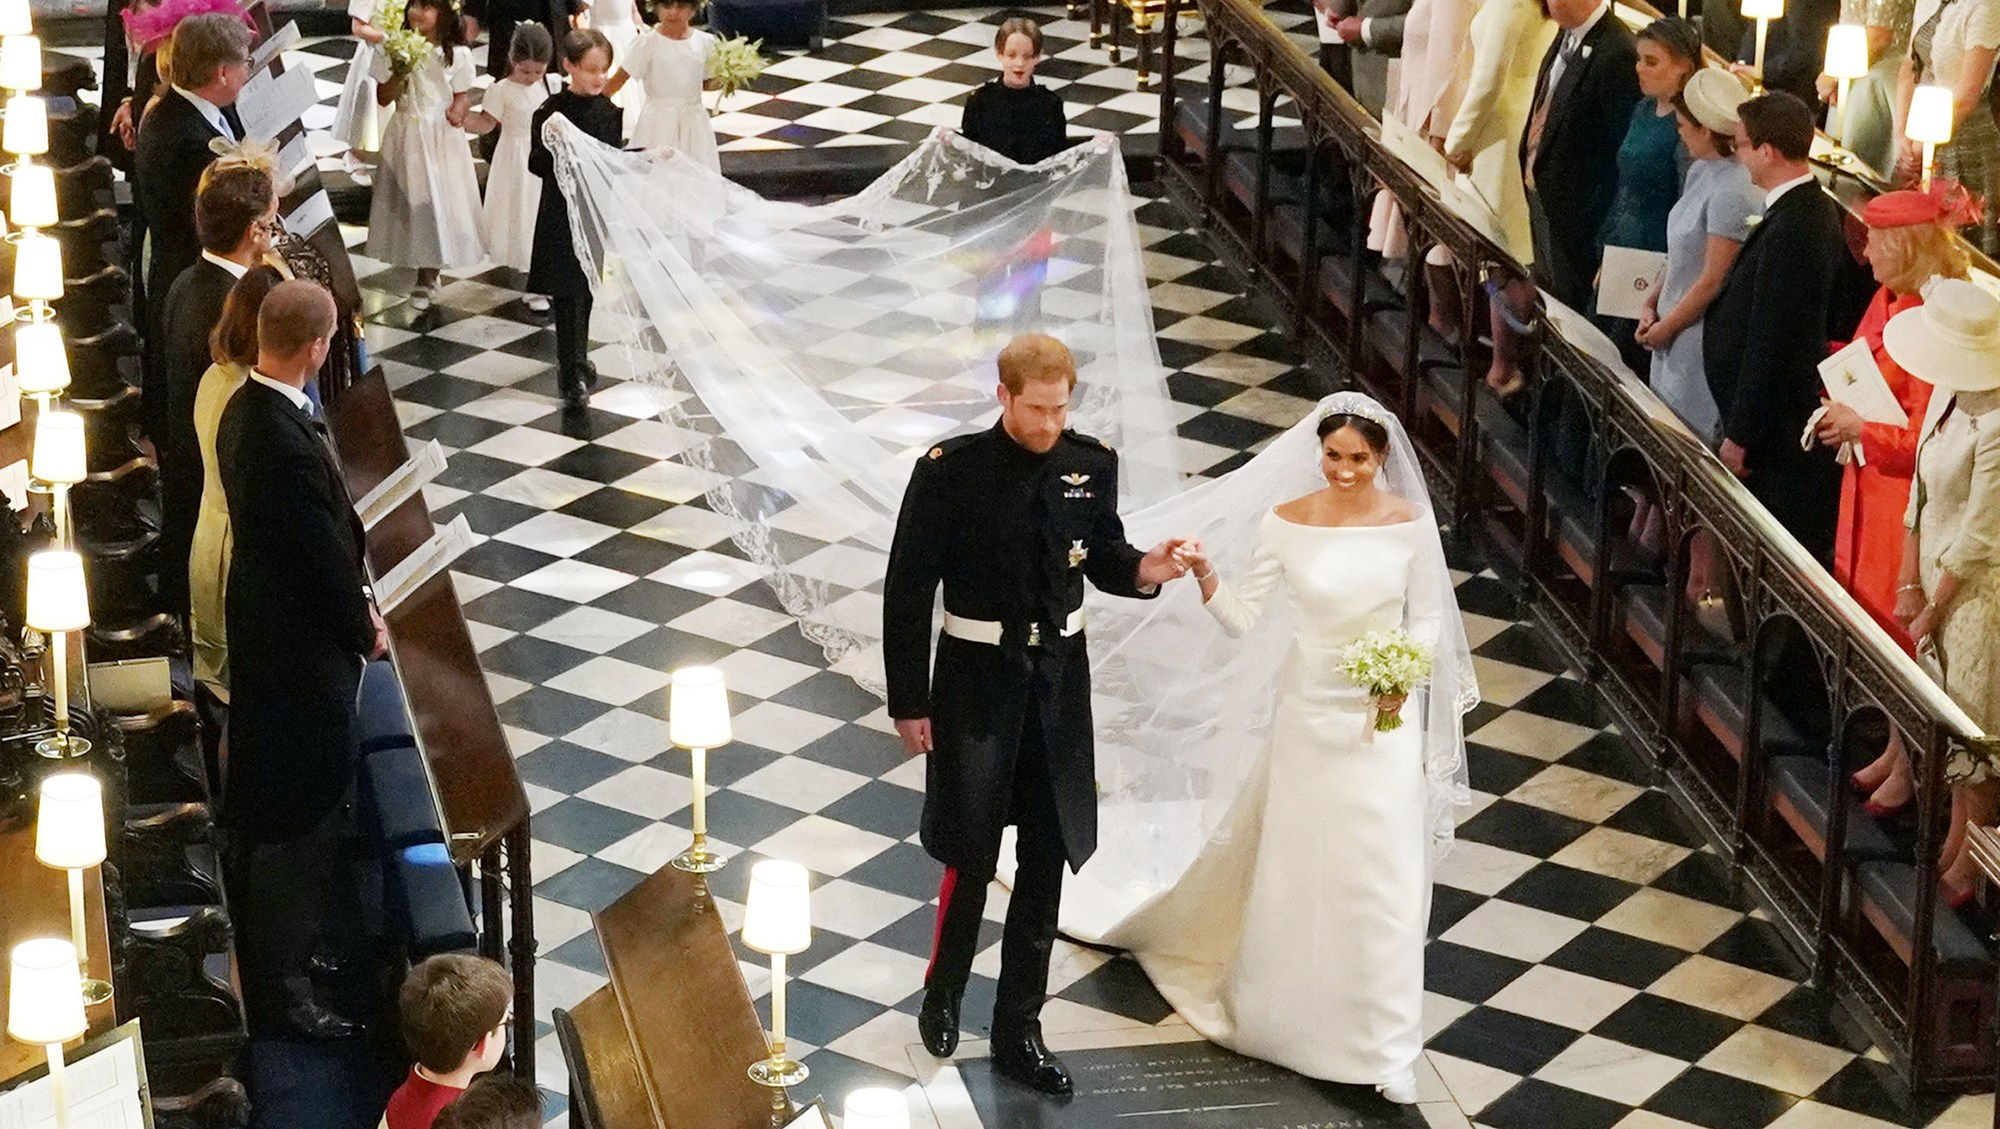 Britain's Prince Harry, Duke of Sussex (L) and Britain's Meghan Markle, Duchess of Sussex, (R) walk away from the High Altar